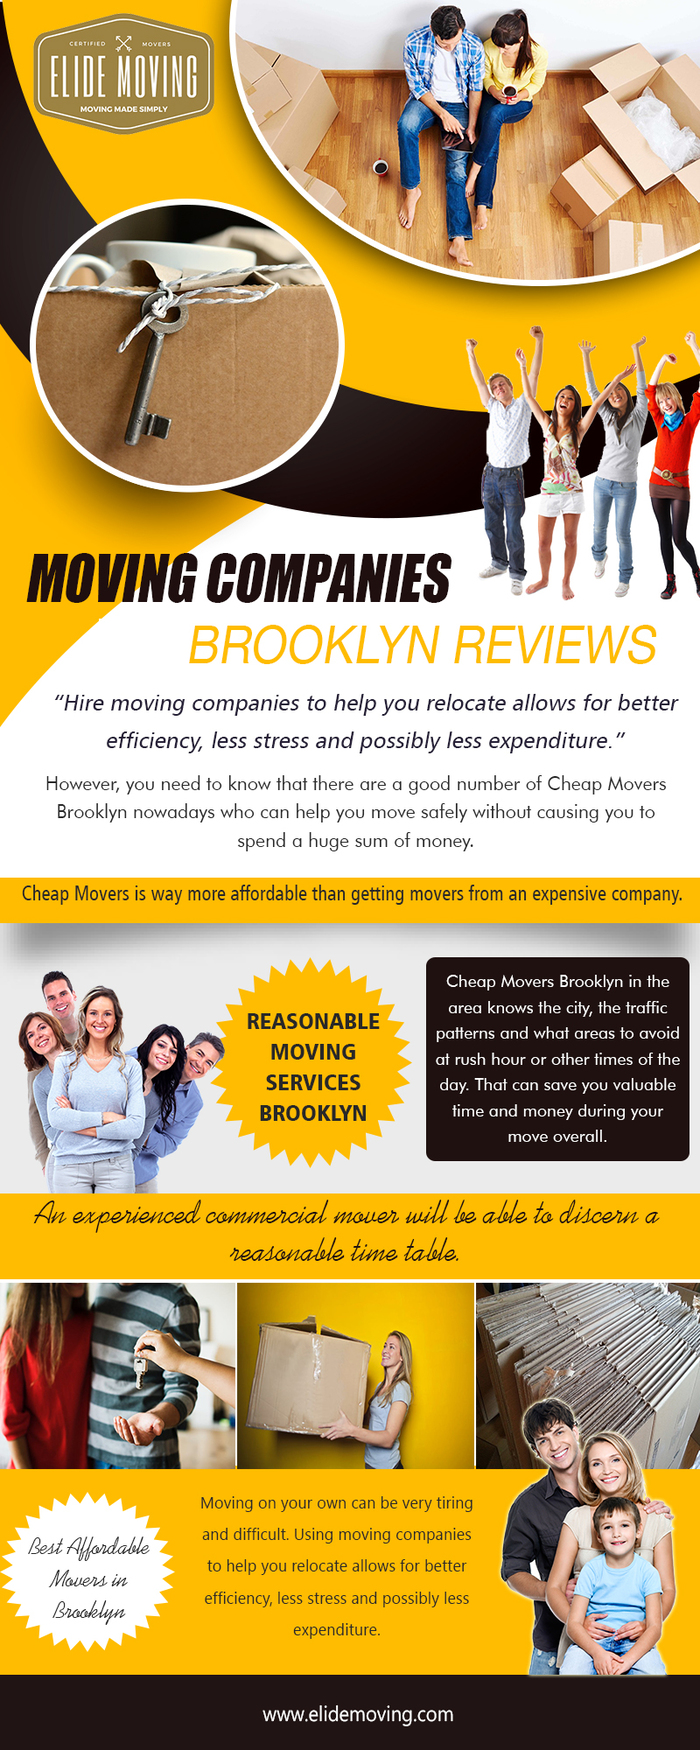 Moving Companies Brooklyn Reviews My Album of Elide Moving 2387 Ocean Ave - Photo 8 of 8